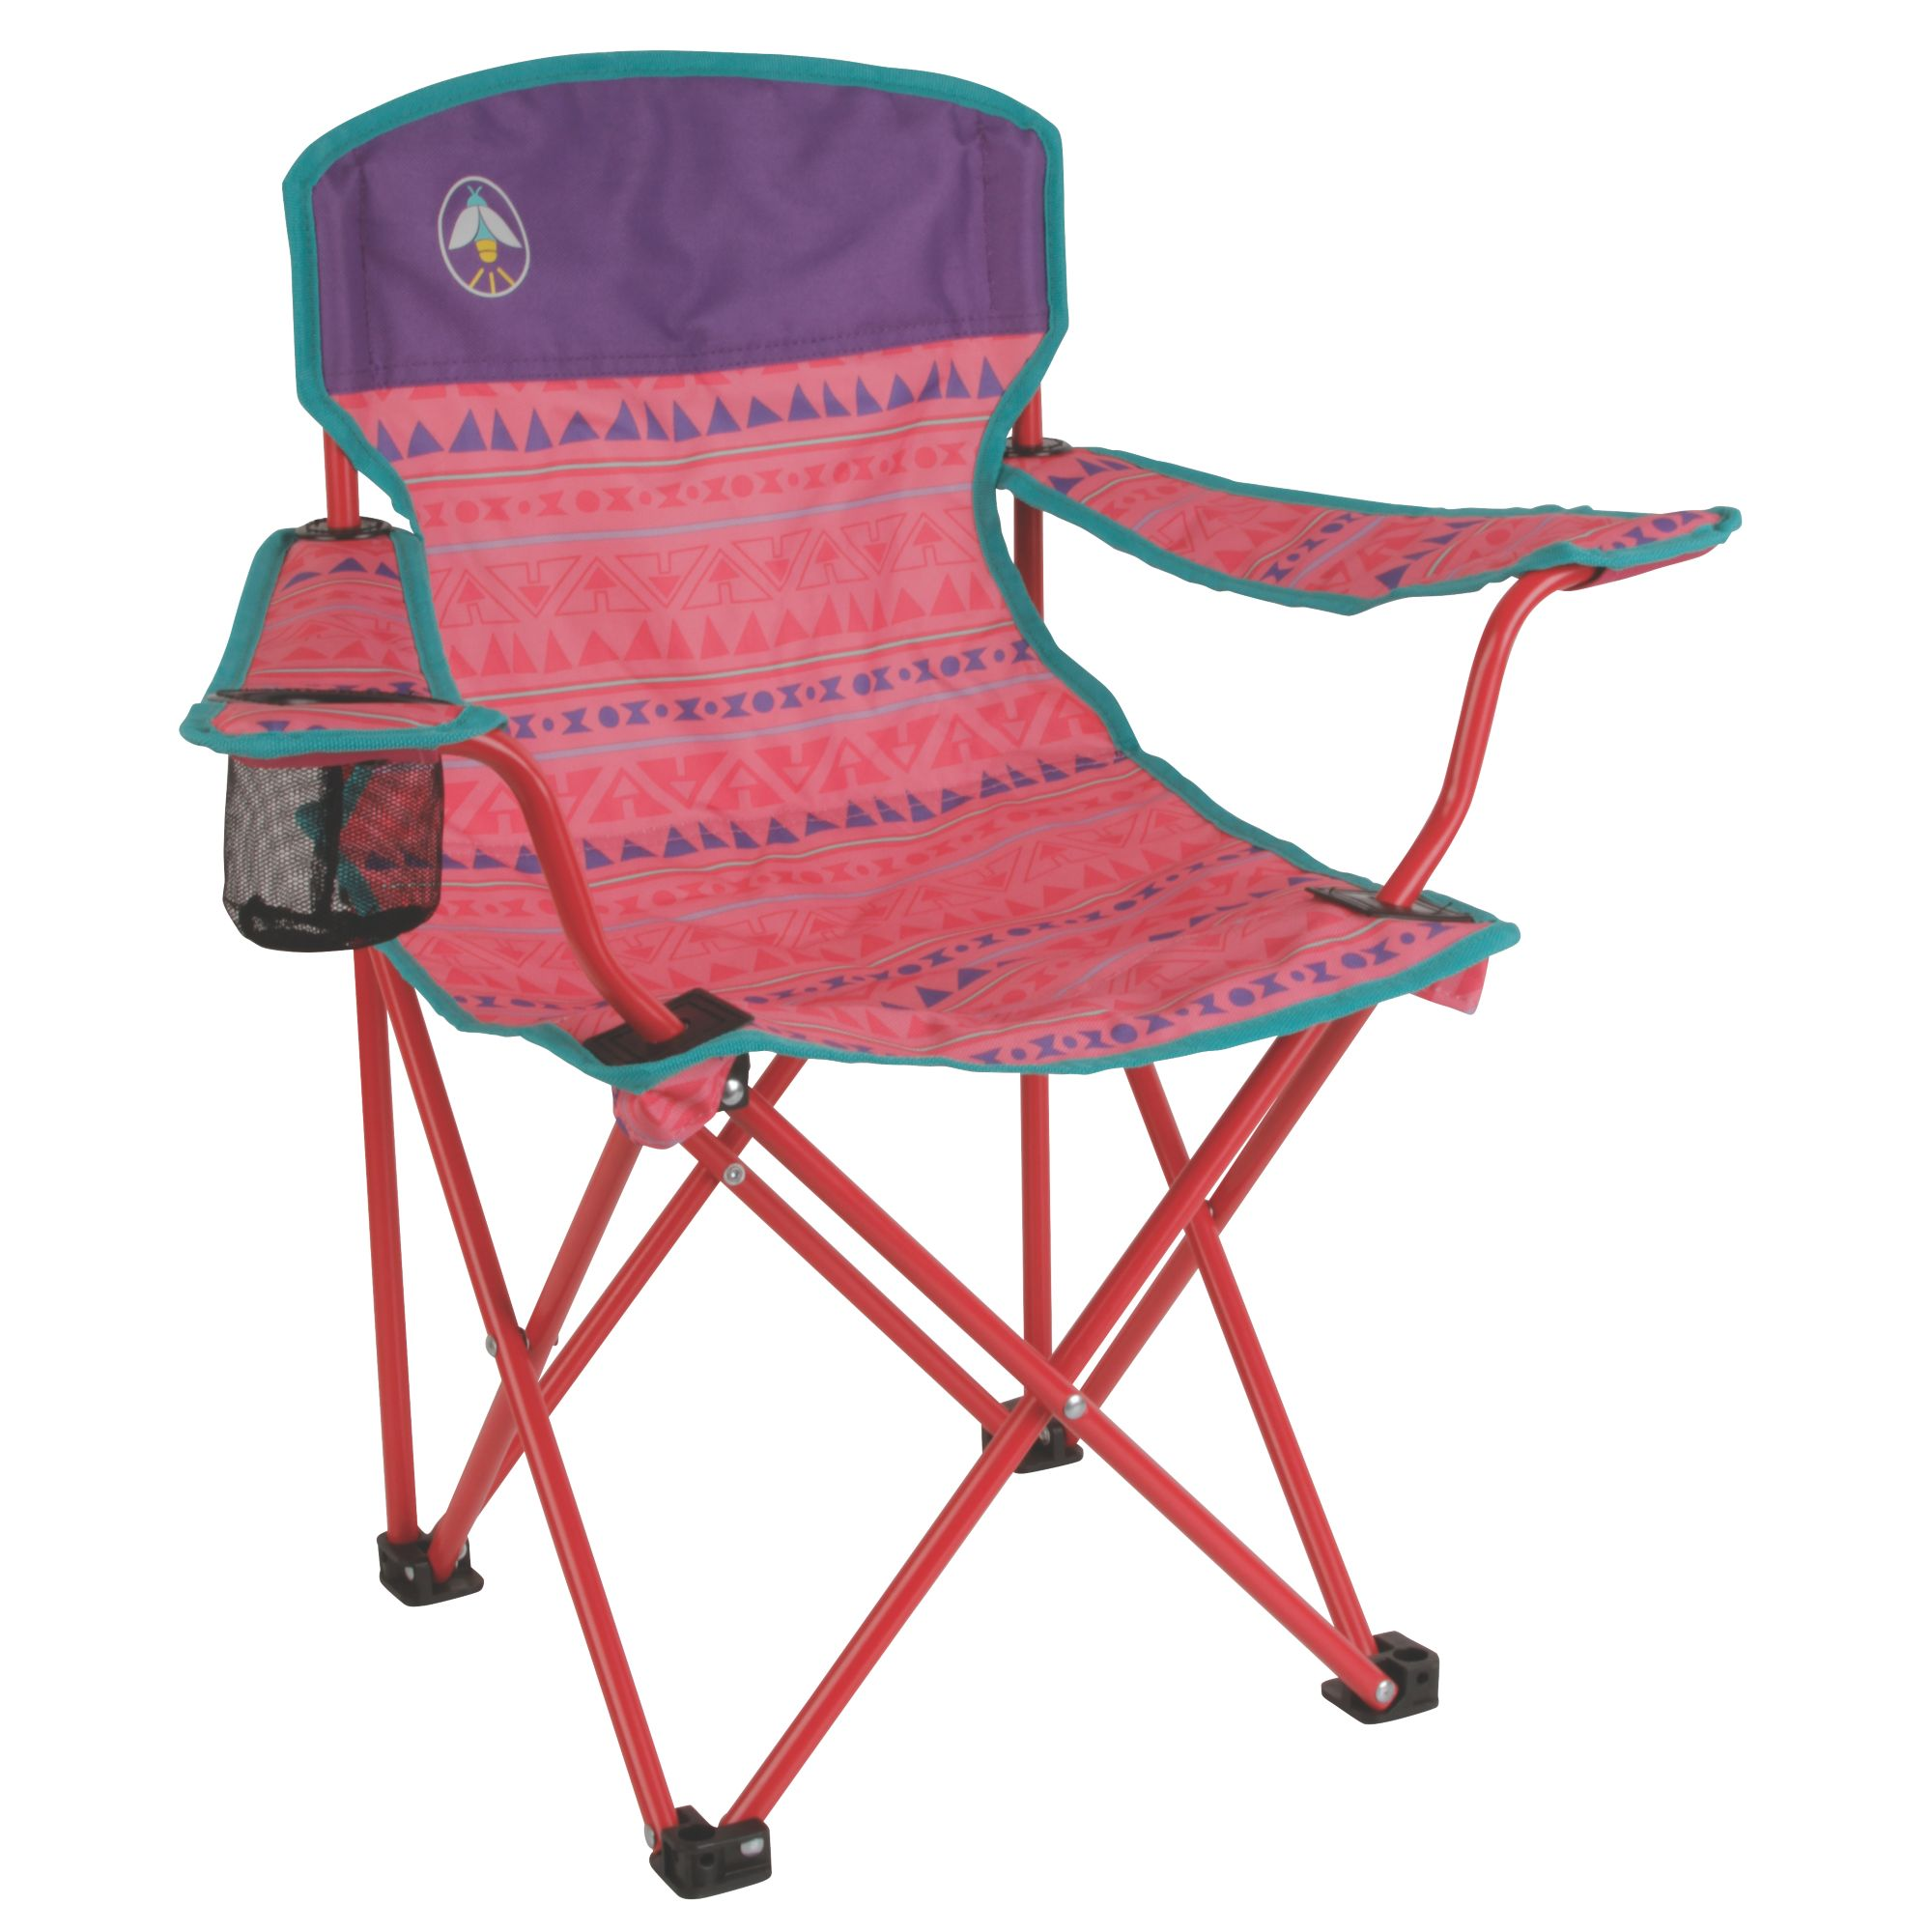 Bon Product Image Coleman Kids Camping Glow In The Dark Quad Chair, Tribal Teal/